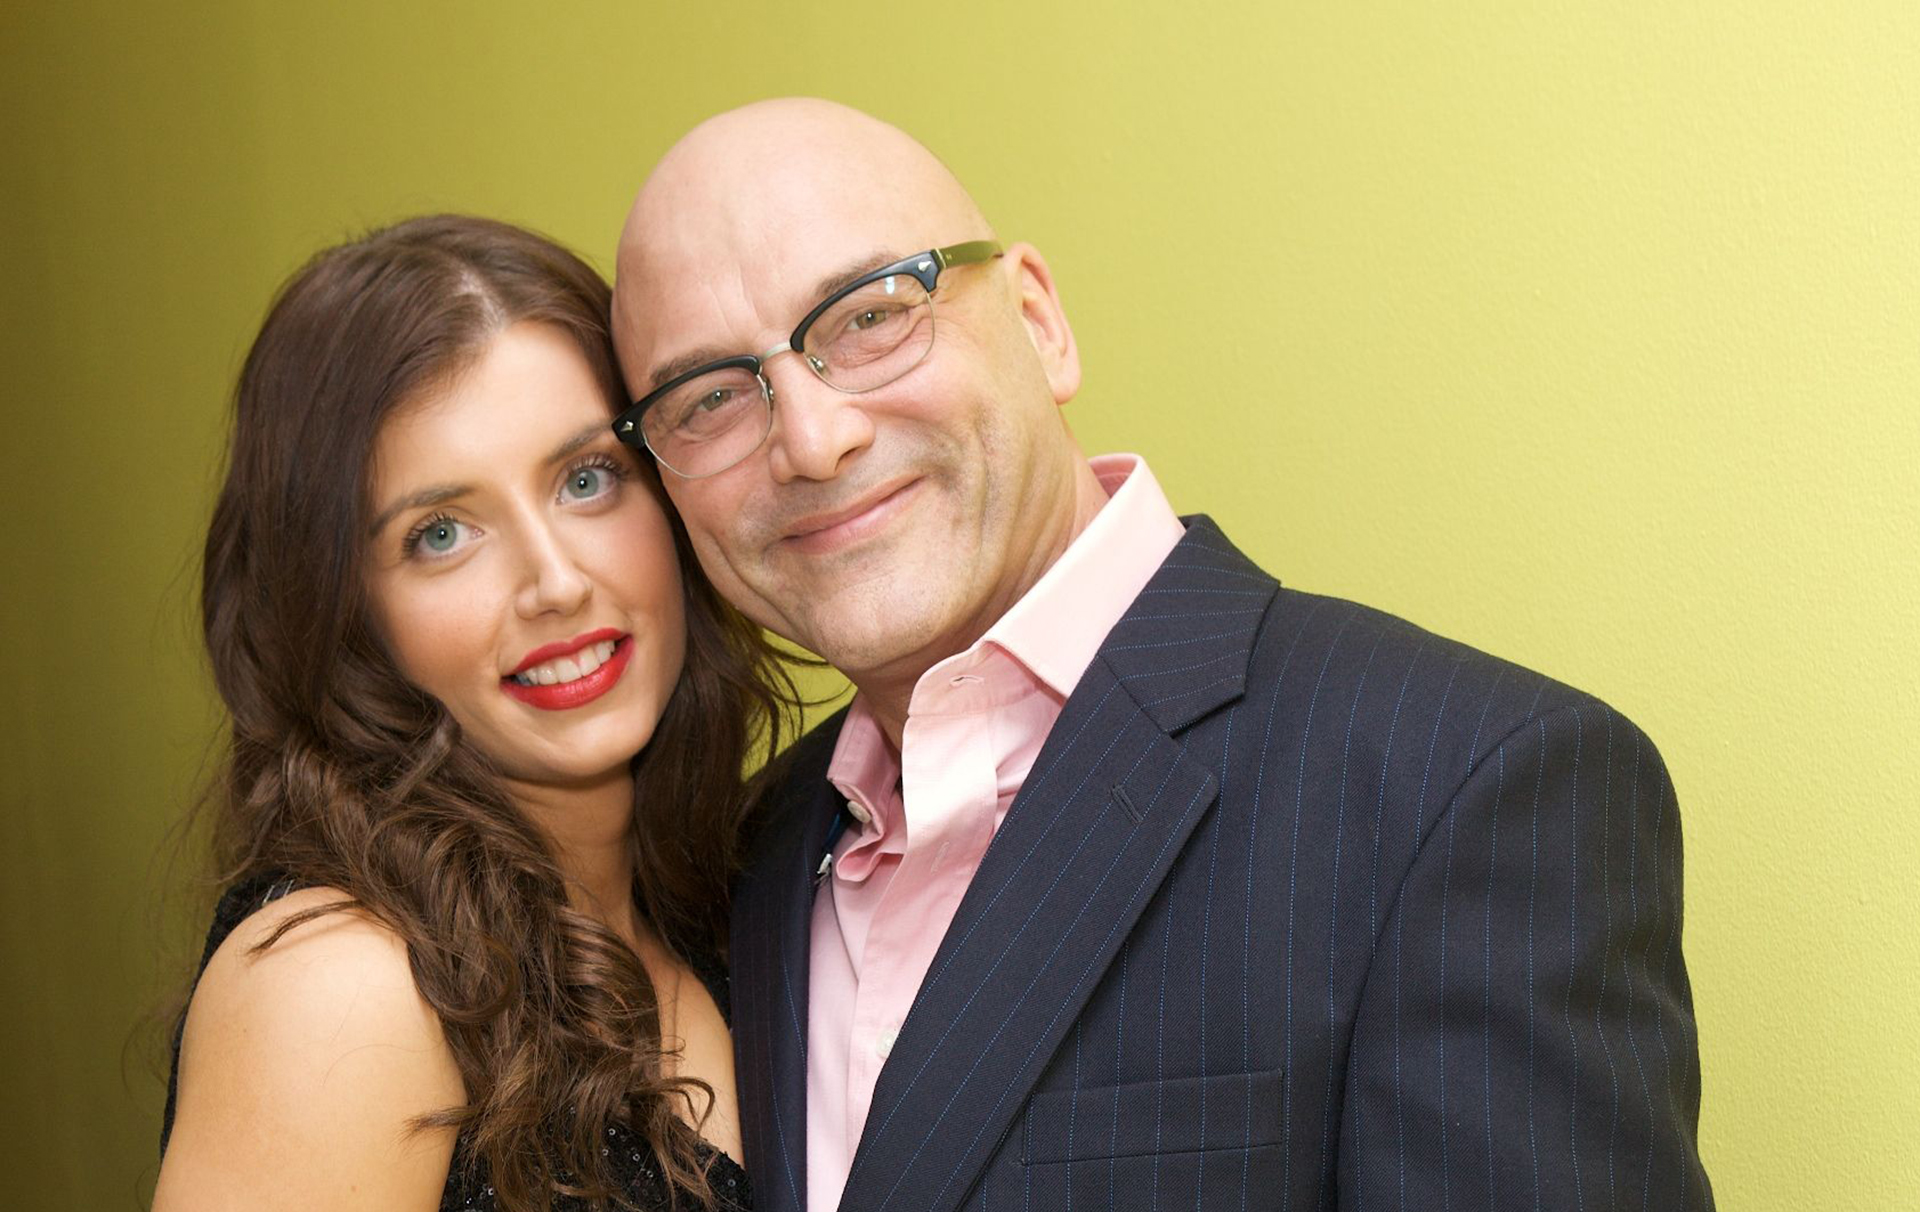 Gregg Wallace and Anne-Marie Sterpini